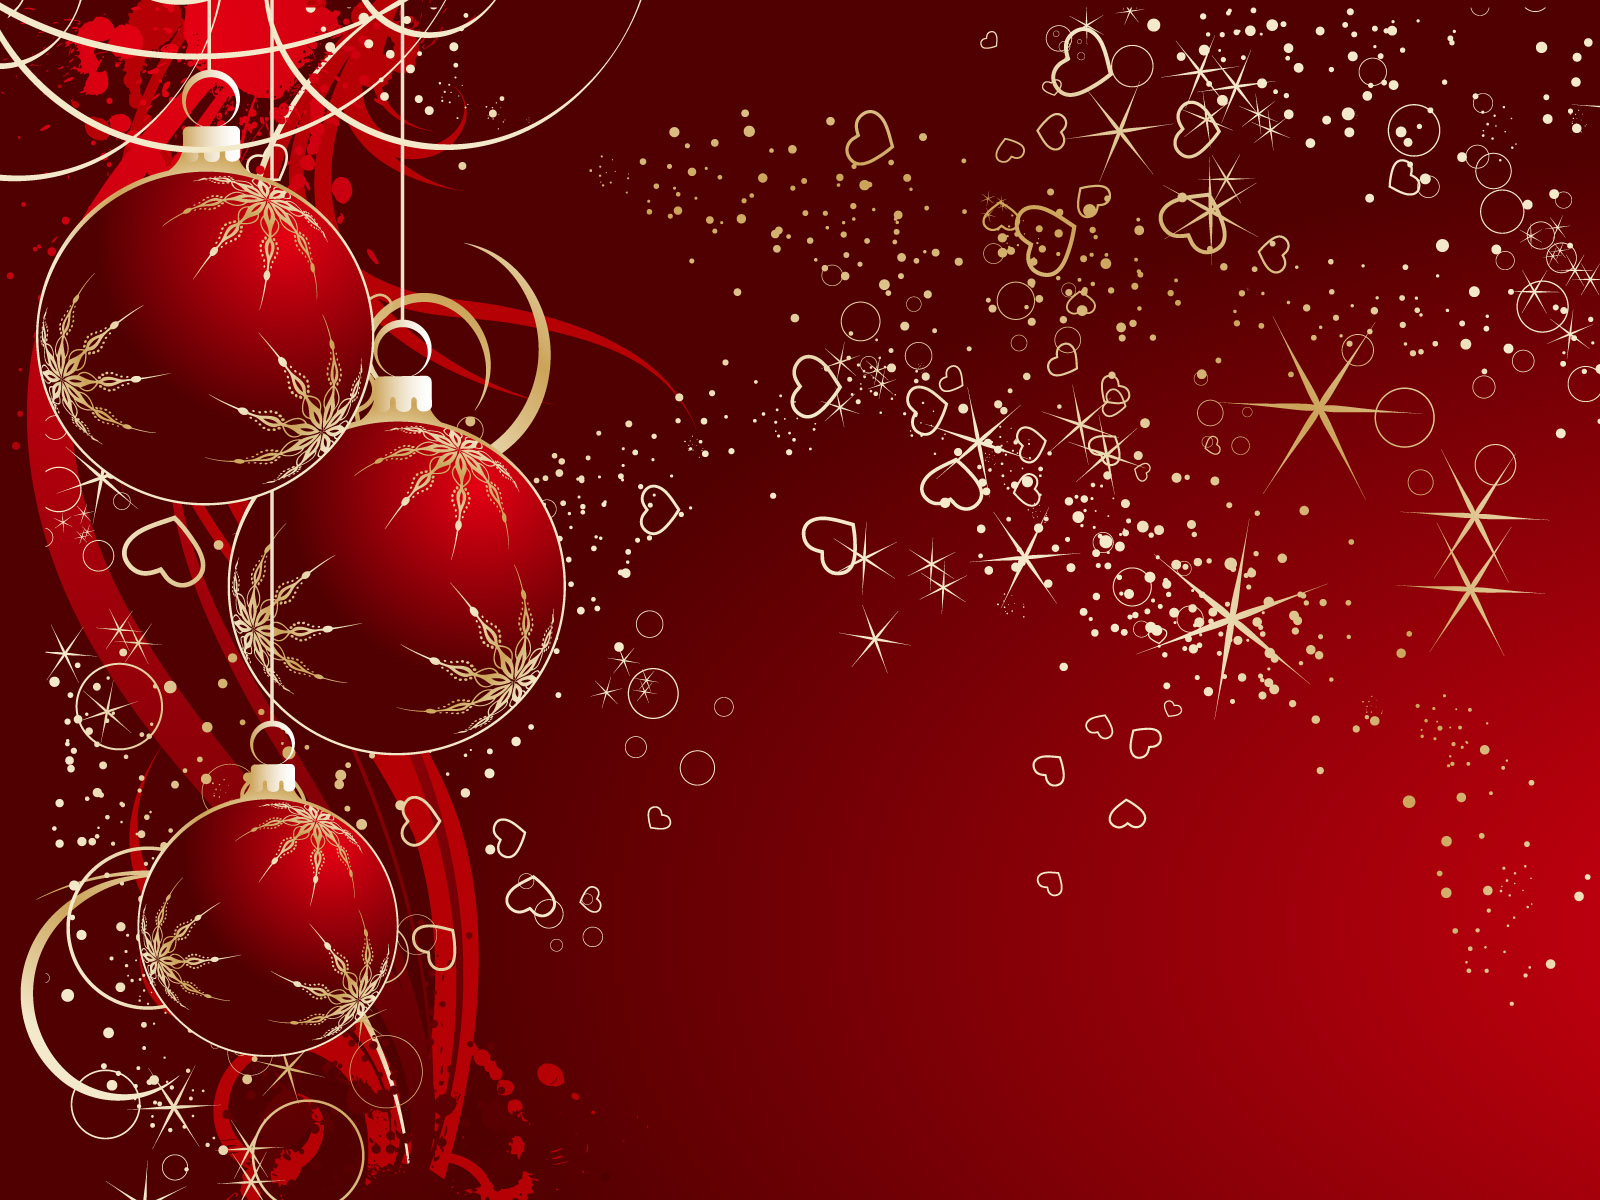 Red and white christmas wallpaper | Wallpaper Wide HD